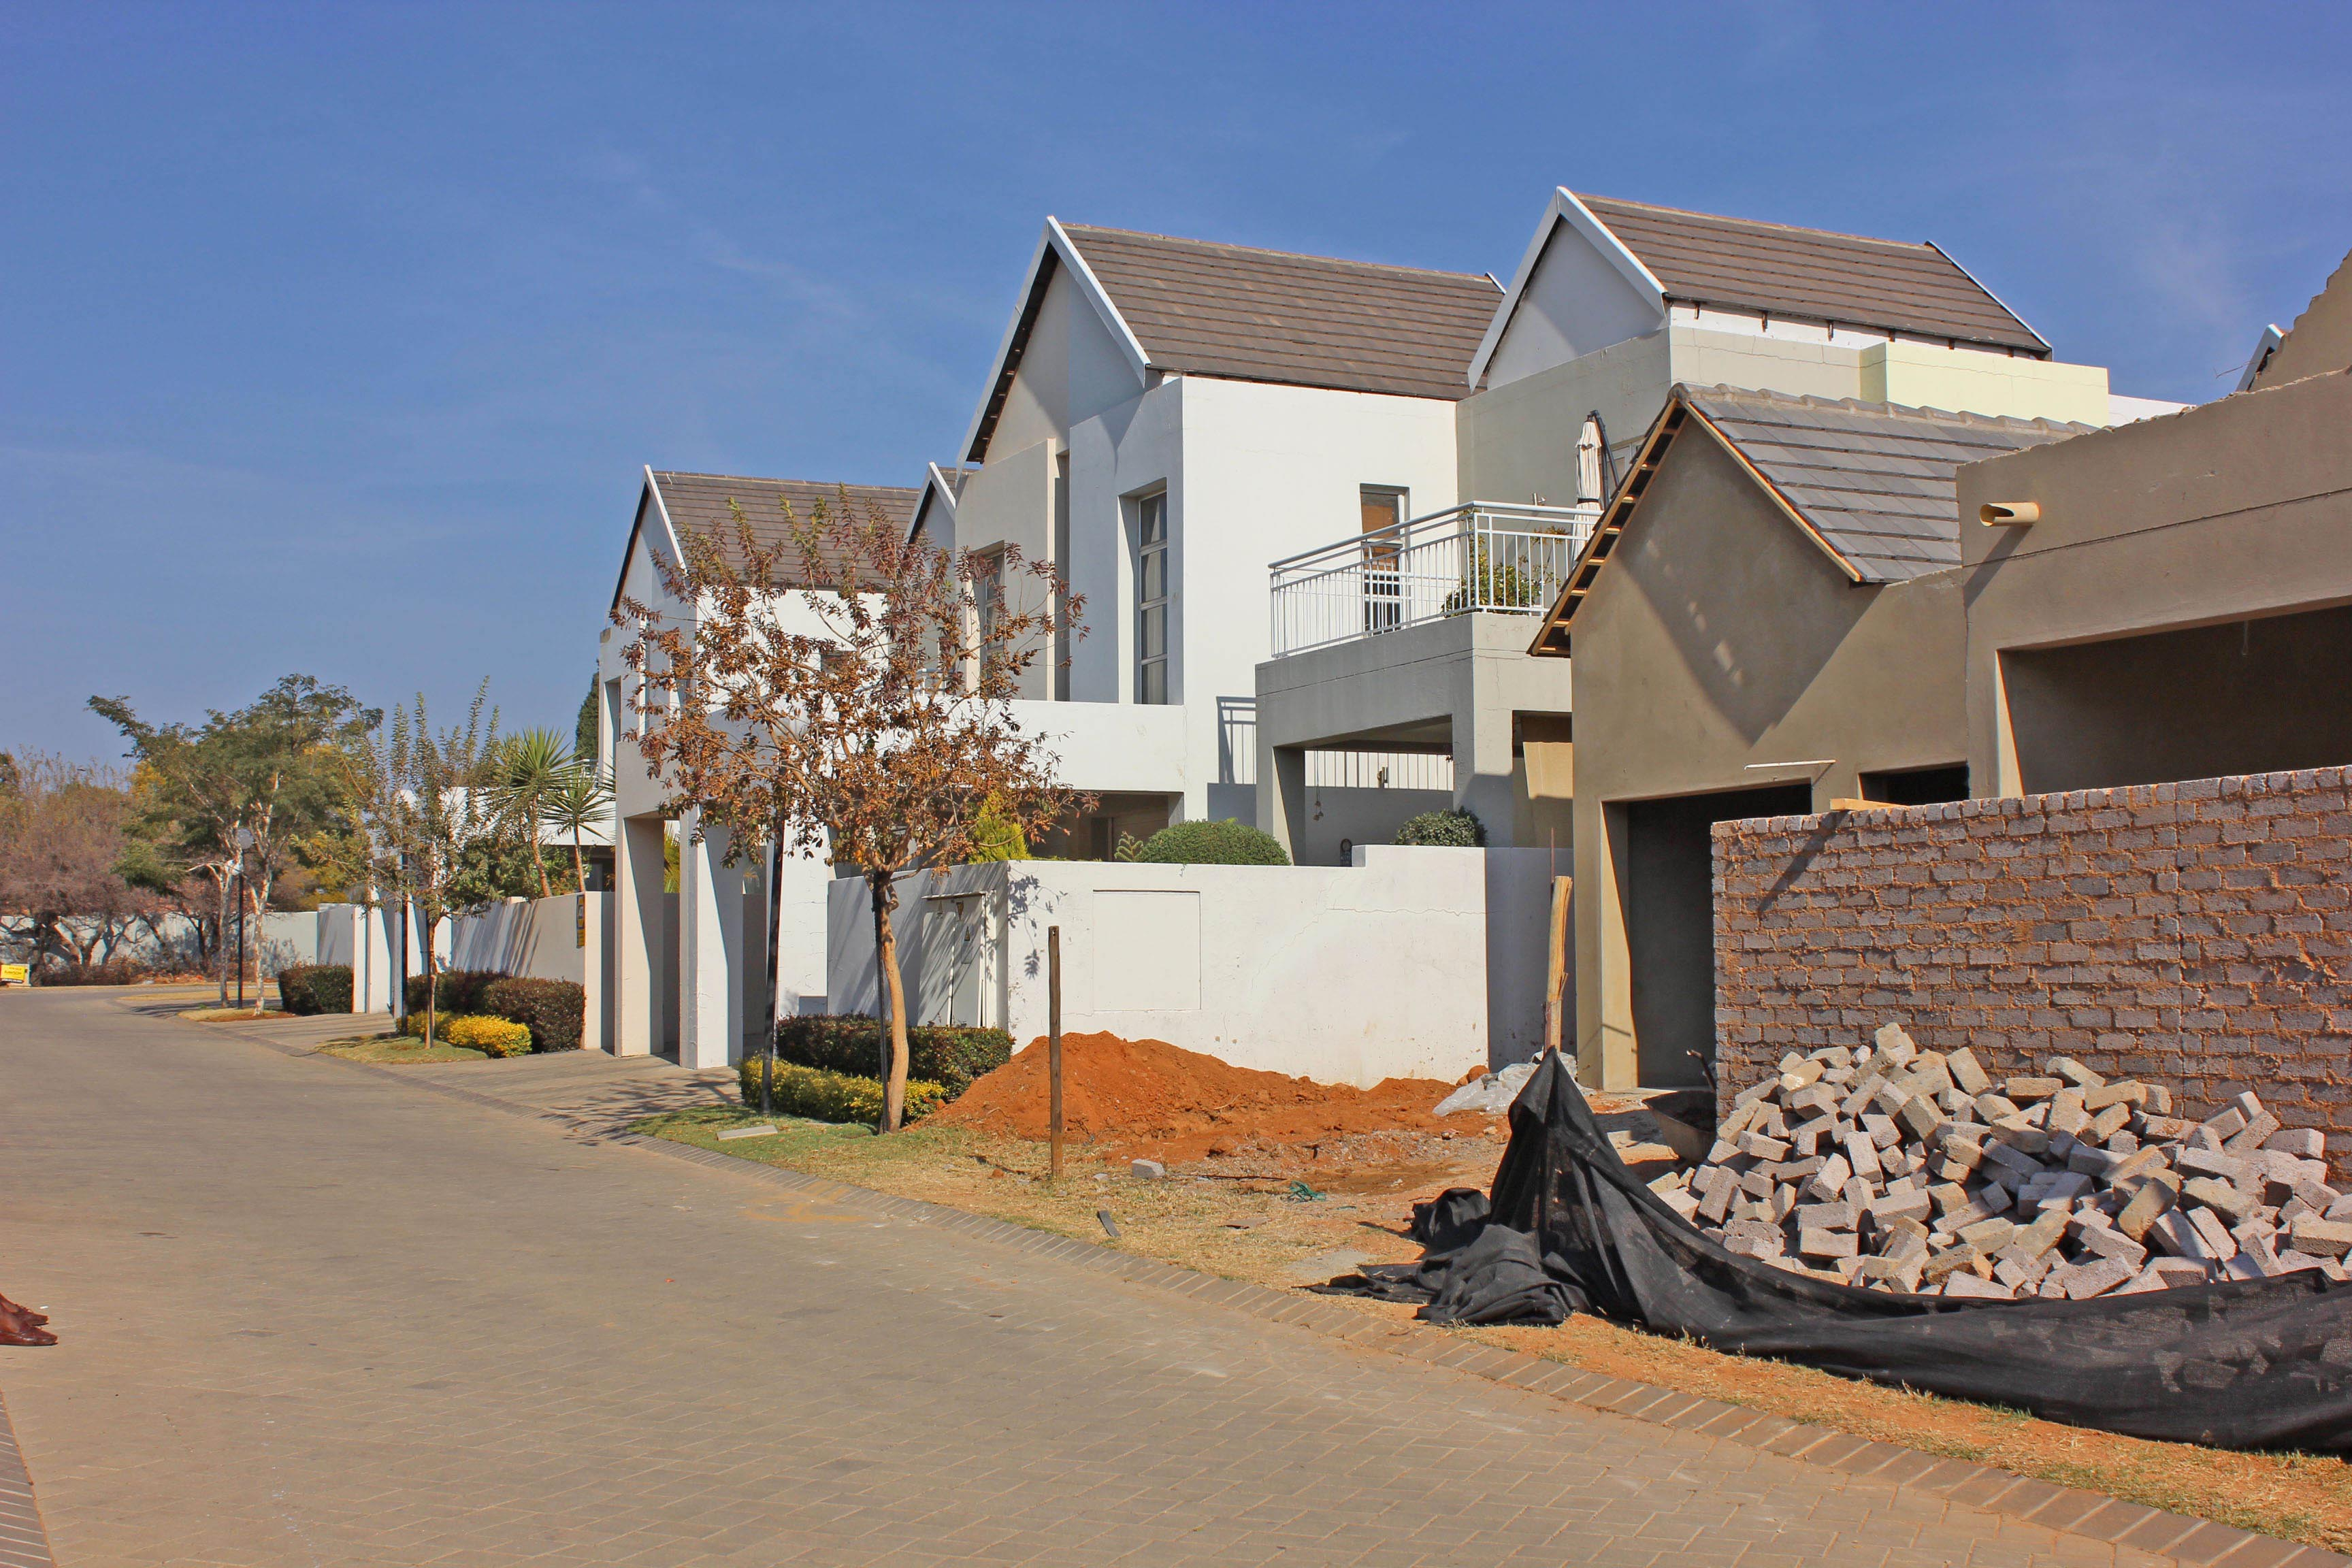 3 Bedroom Townhouse for sale in North Riding ENT0075308 : photo#18